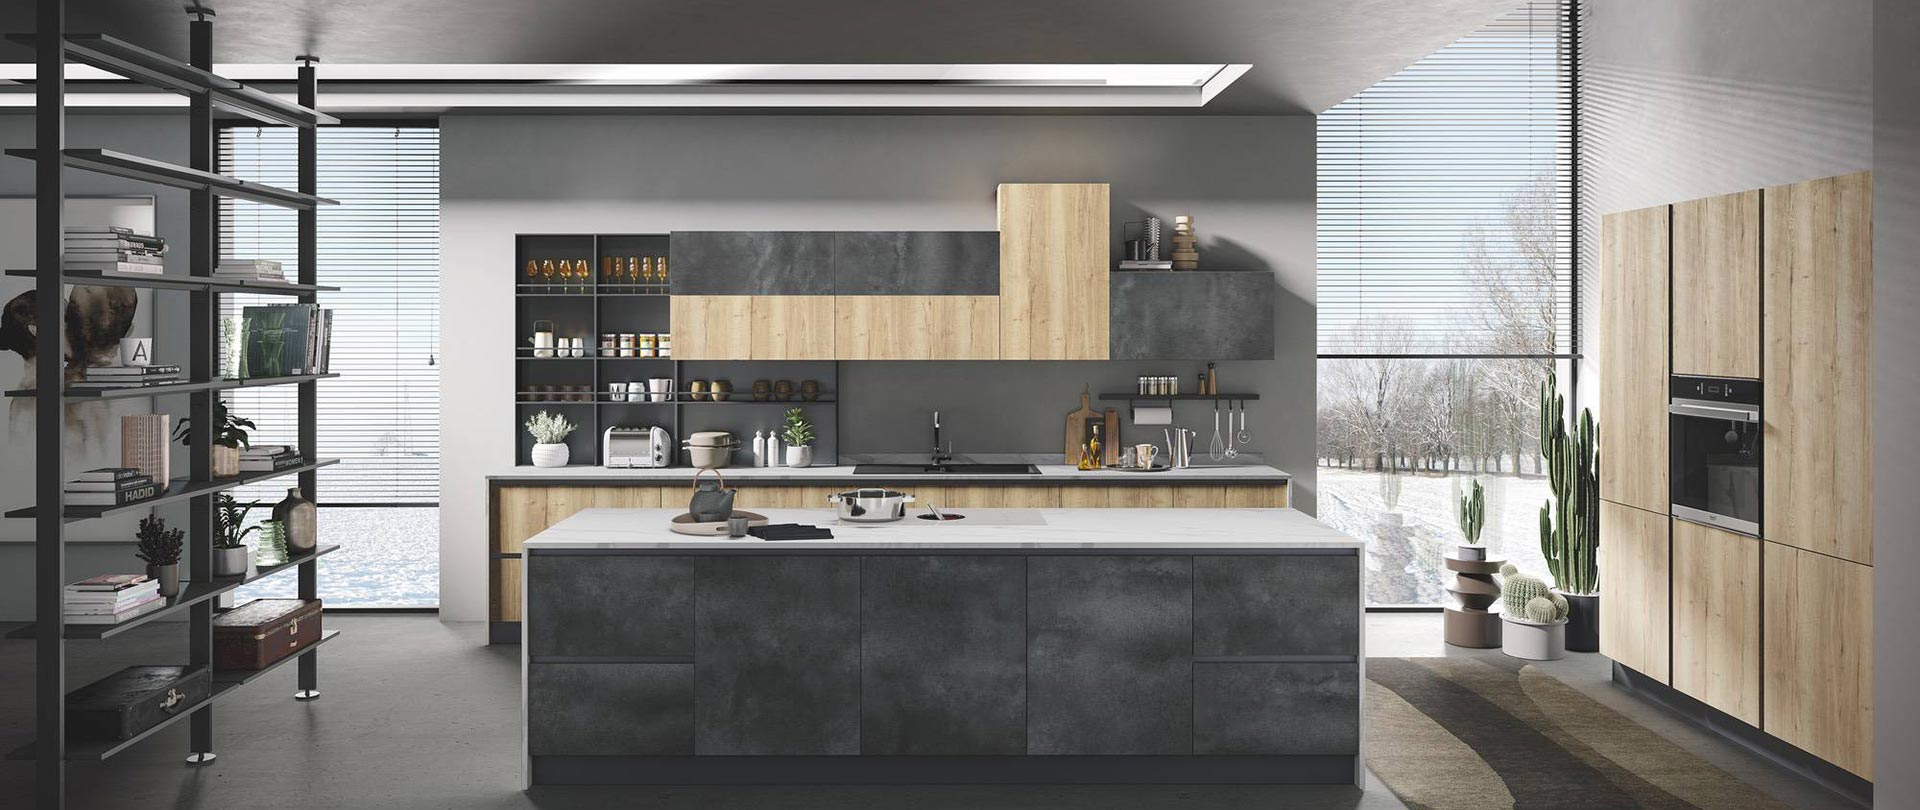 Cucina Open Space Moderna a kitchen with impeccable design: star